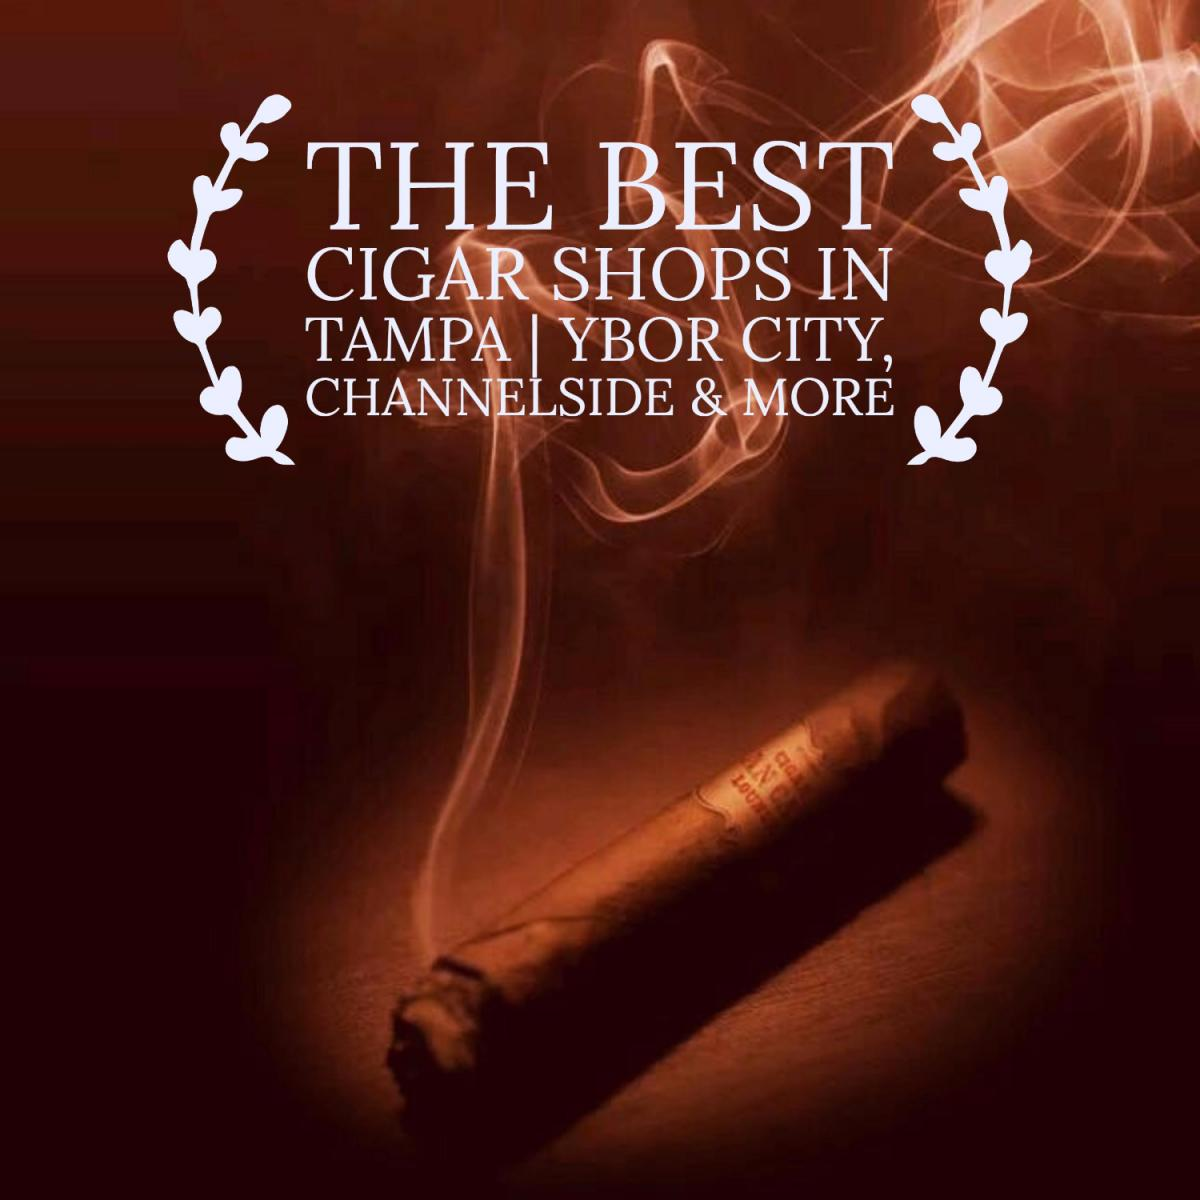 The Best Cigar Shops in Tampa | Ybor City, Channelside & More